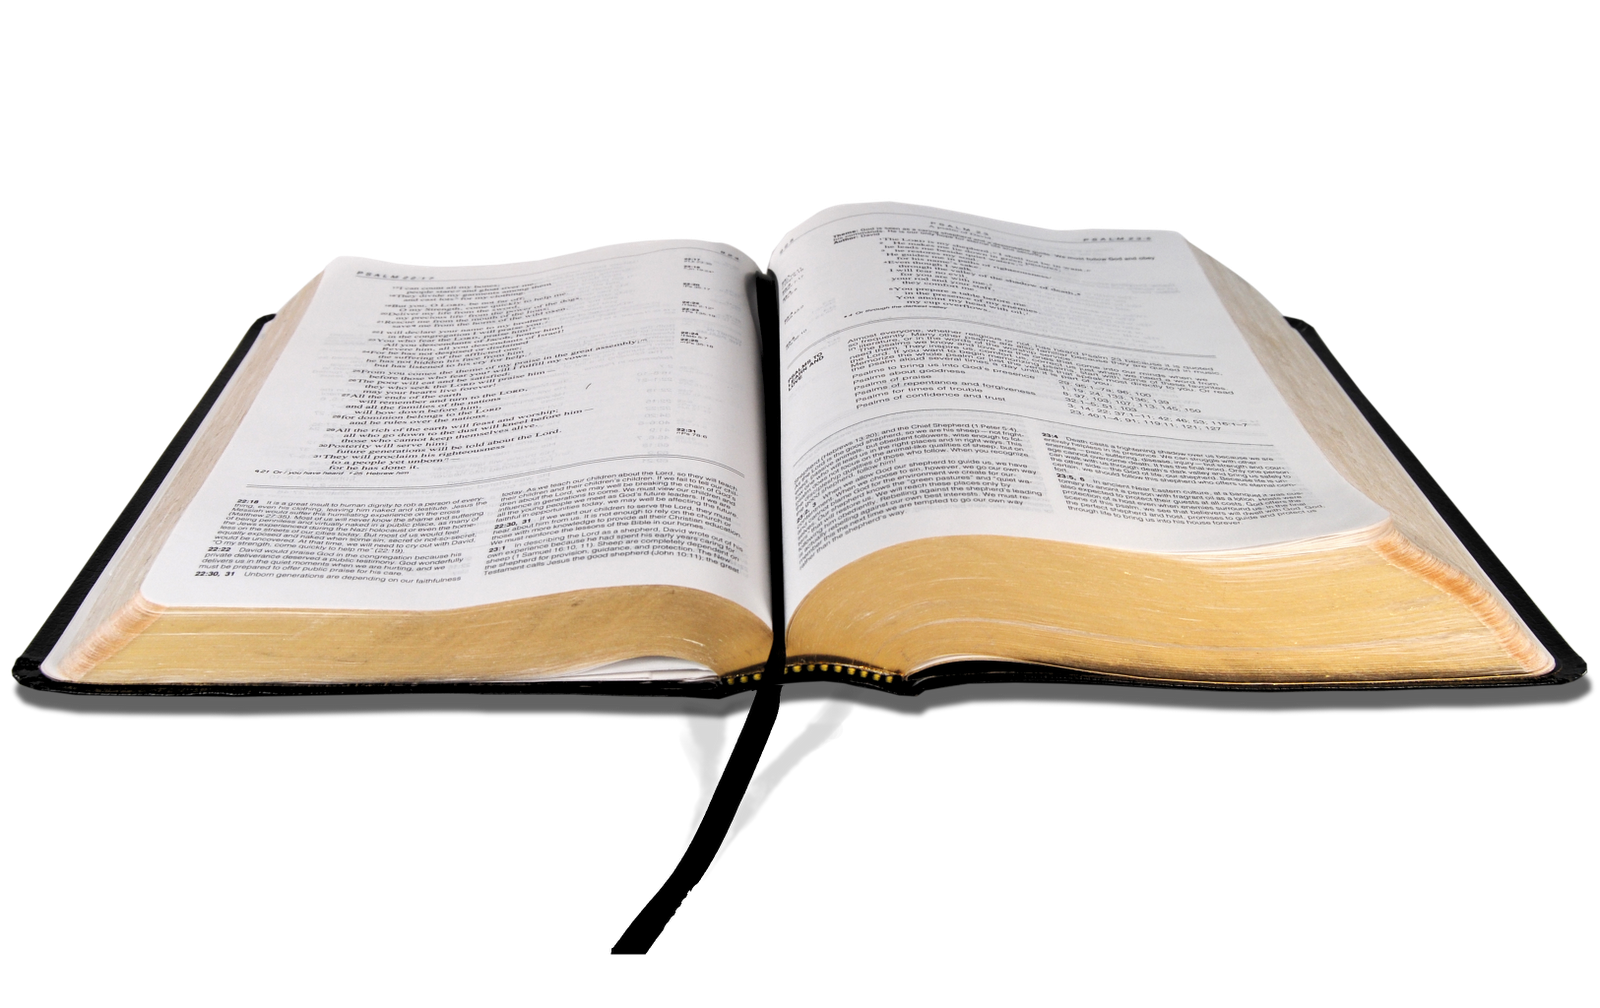 Bible png images. Use these vector clipart